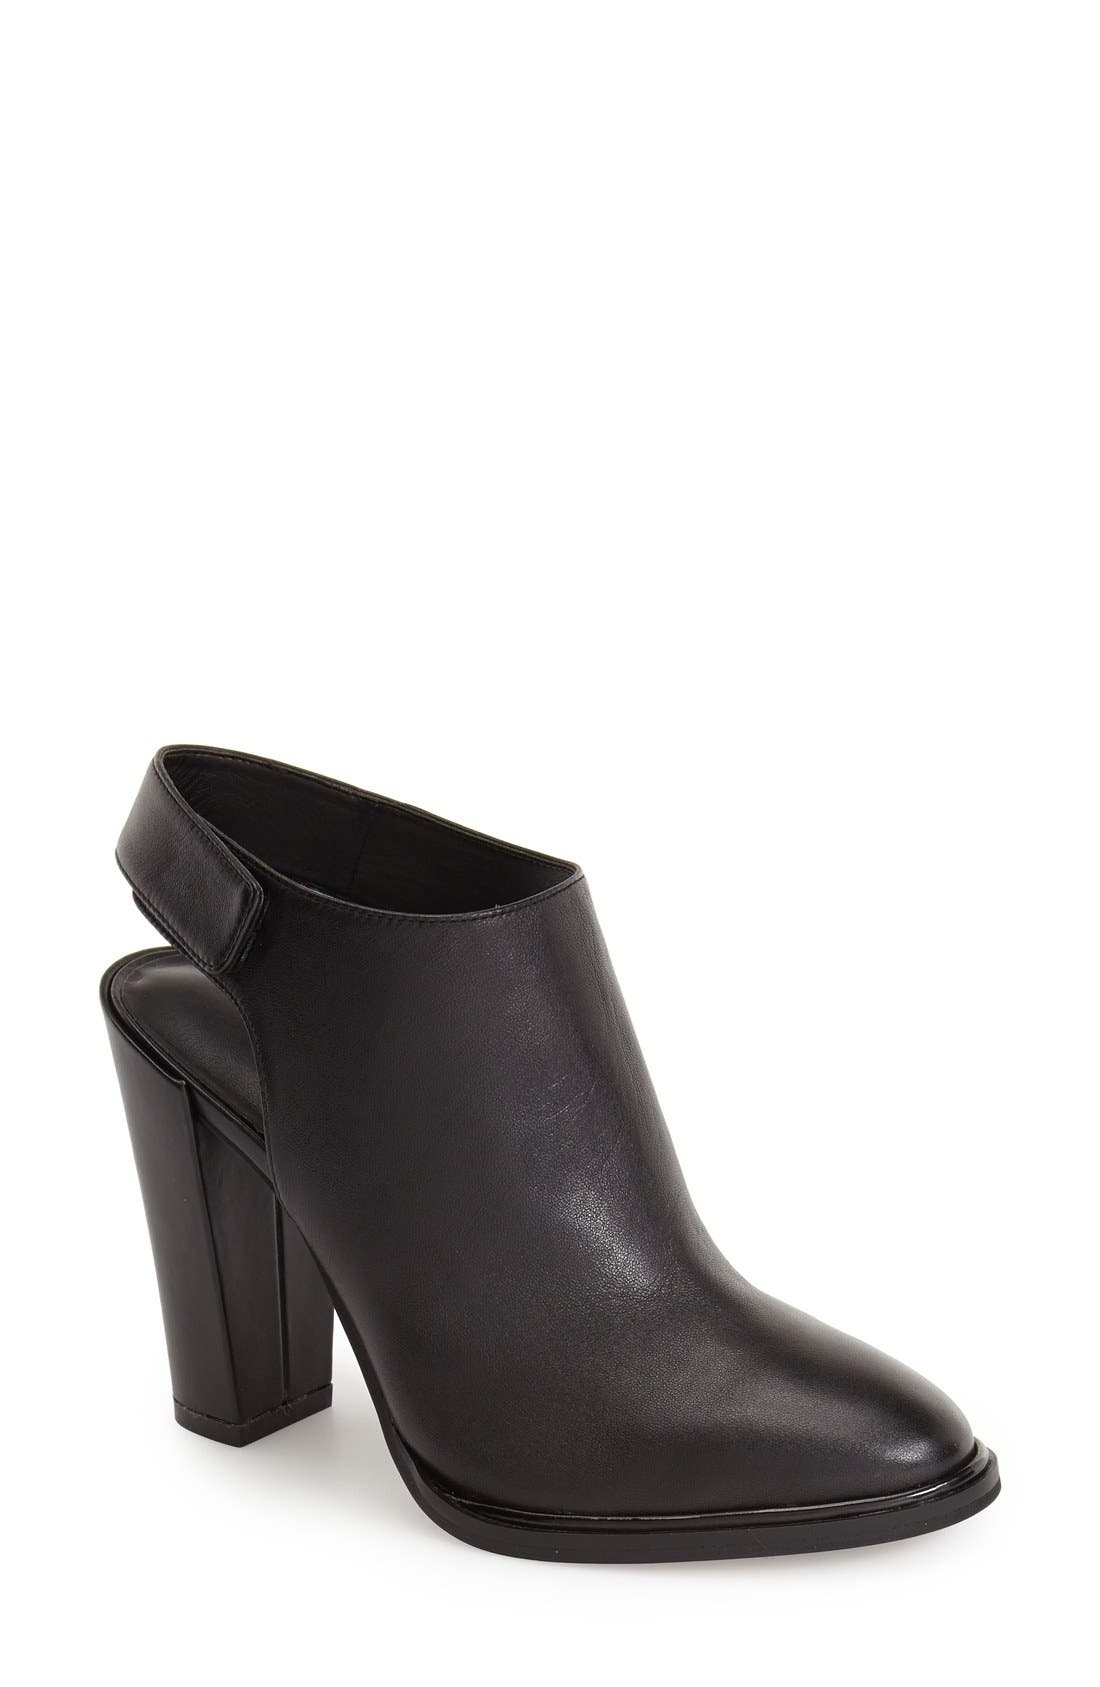 Alternate Image 1 Selected - Kenneth Cole New York 'Jill' Slingback Clog (Women)